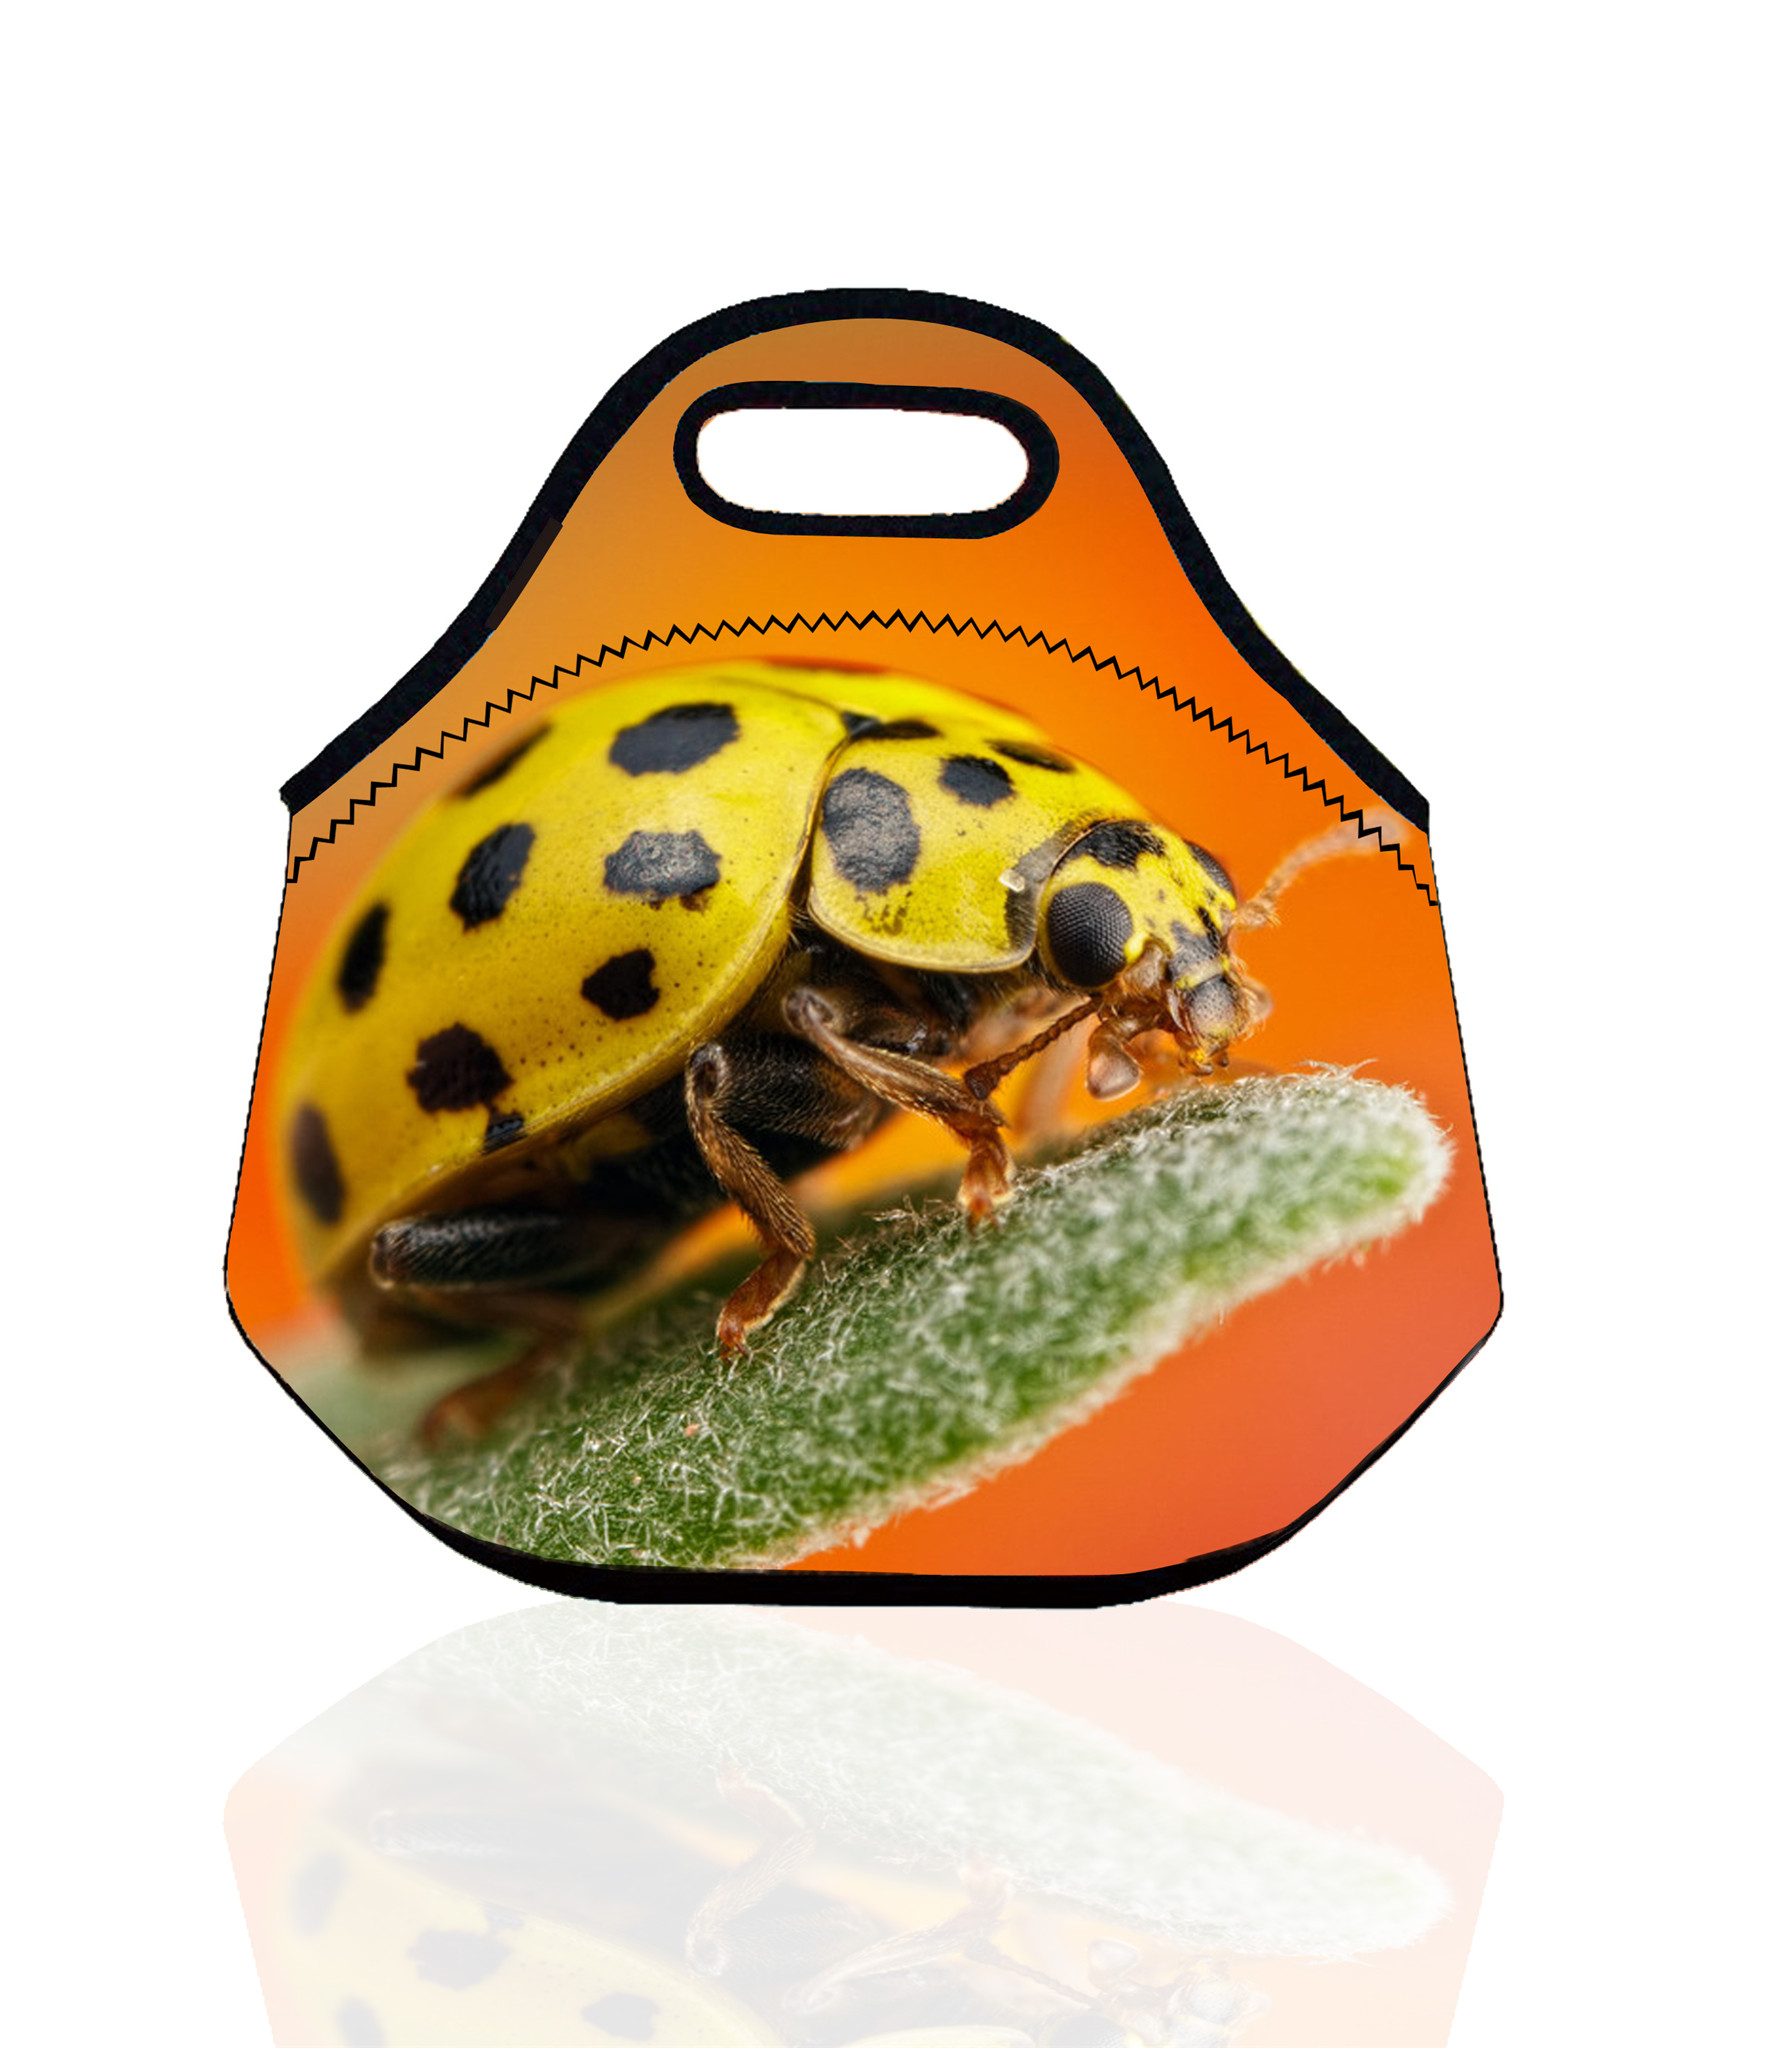 Neoprene Thermal Insulated insect Lunch Bag for Women Kids storage bags Tote lunch box Insulation Bag bolsa termica(China (Mainland))